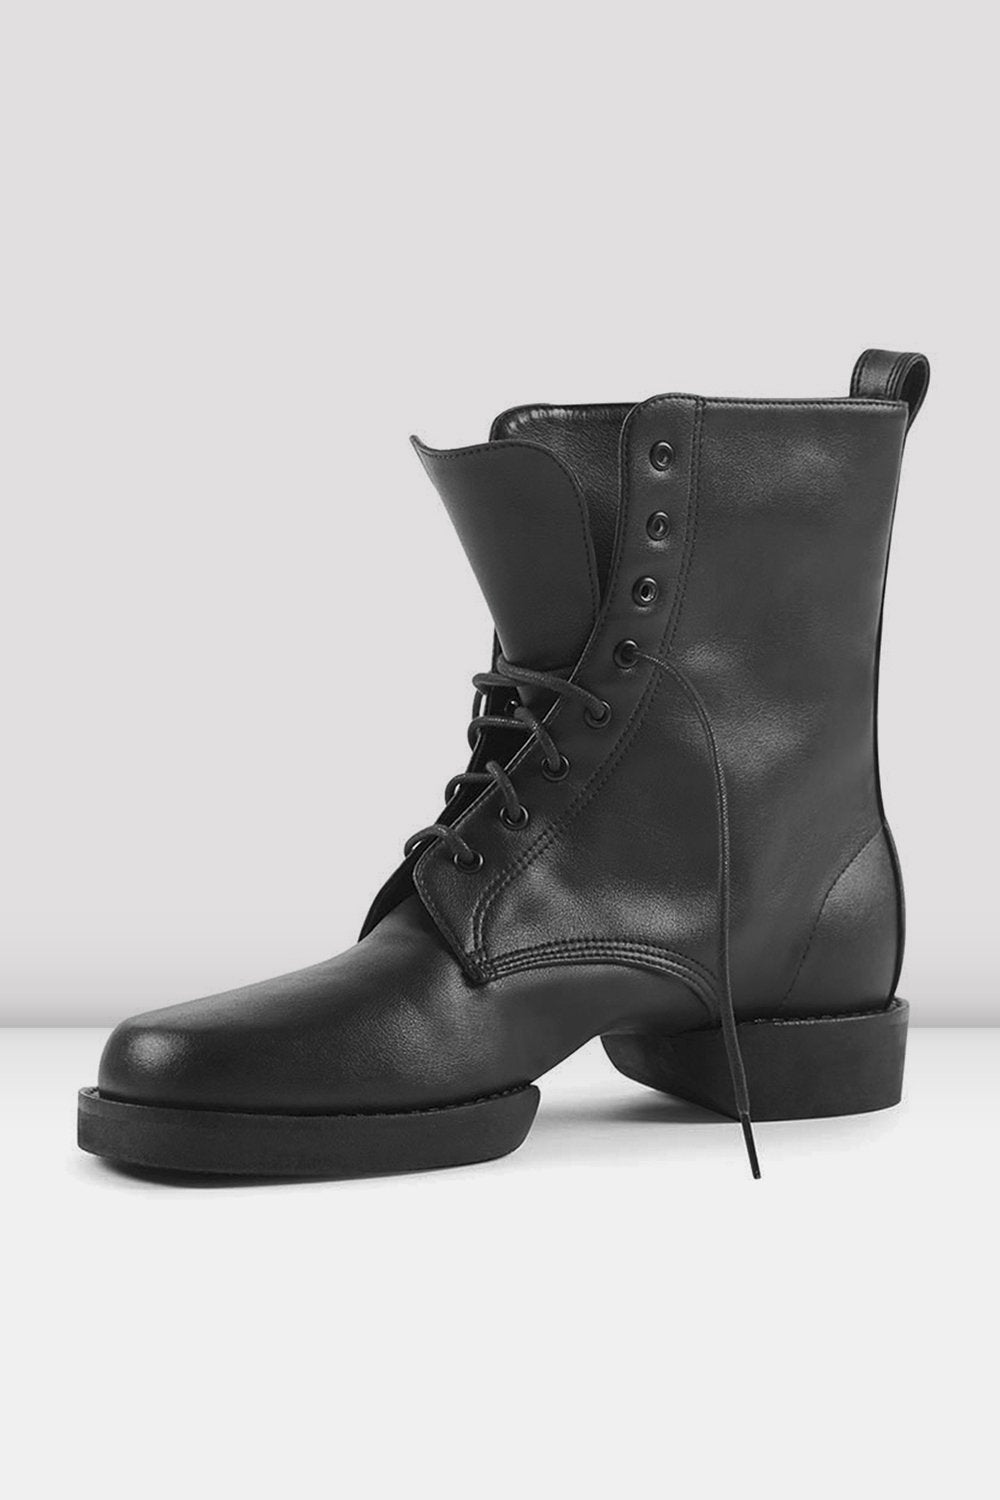 5 Color Leather Lace Up Womens Combat Military Ankle Boots Shoes US Sz 5 9 New